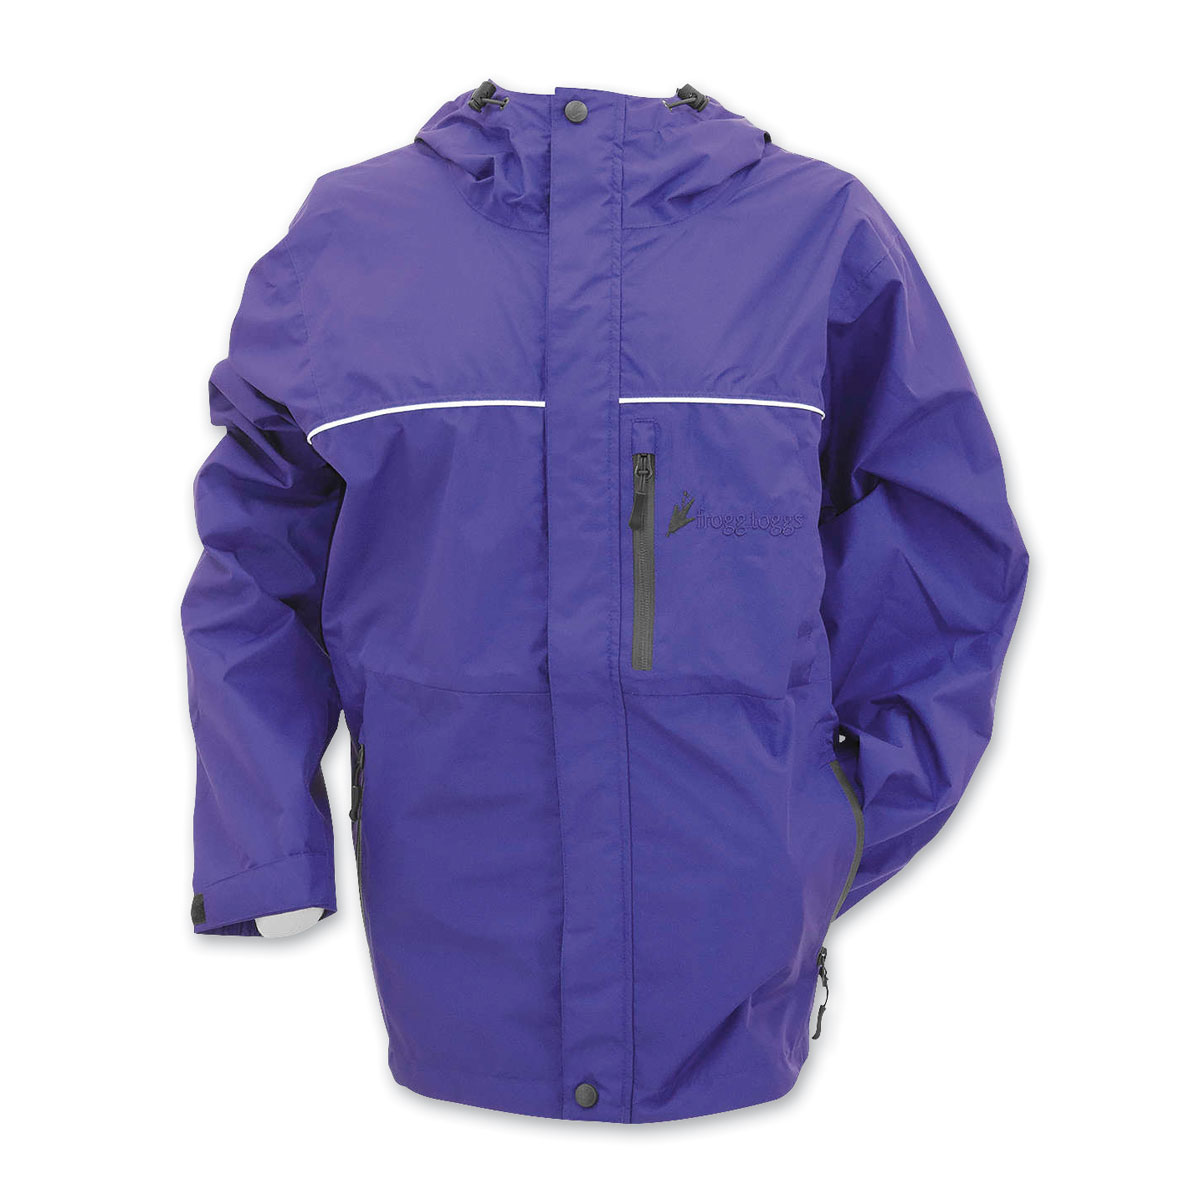 Frogg Toggs Women's Java Toadz Purple Rain Jacket | 160-2409 | J&P ...